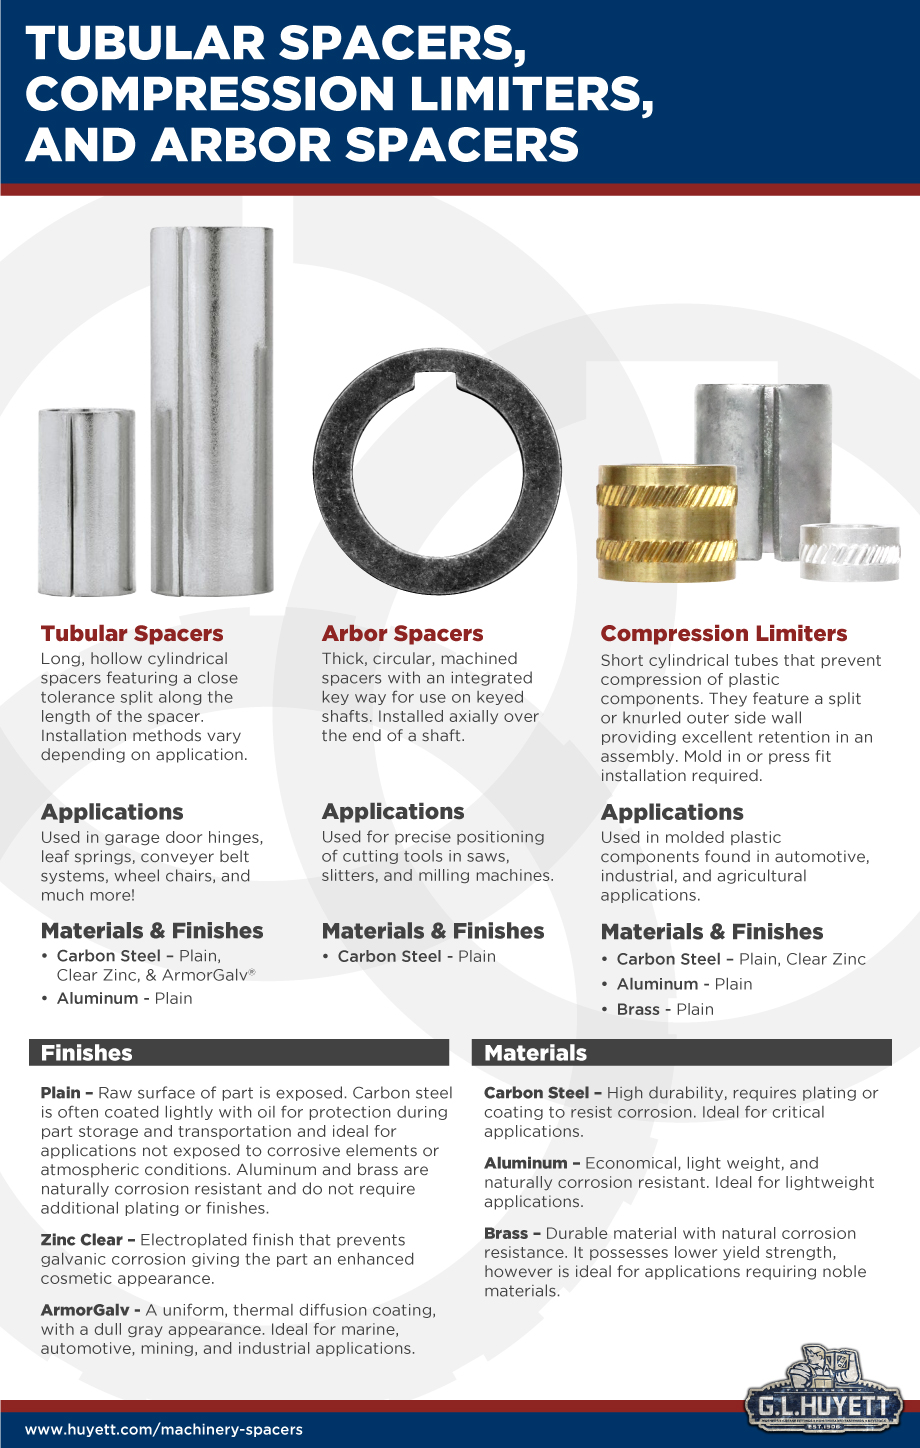 Tubular Spacers, Compression Limiters, and Arbor Spacers